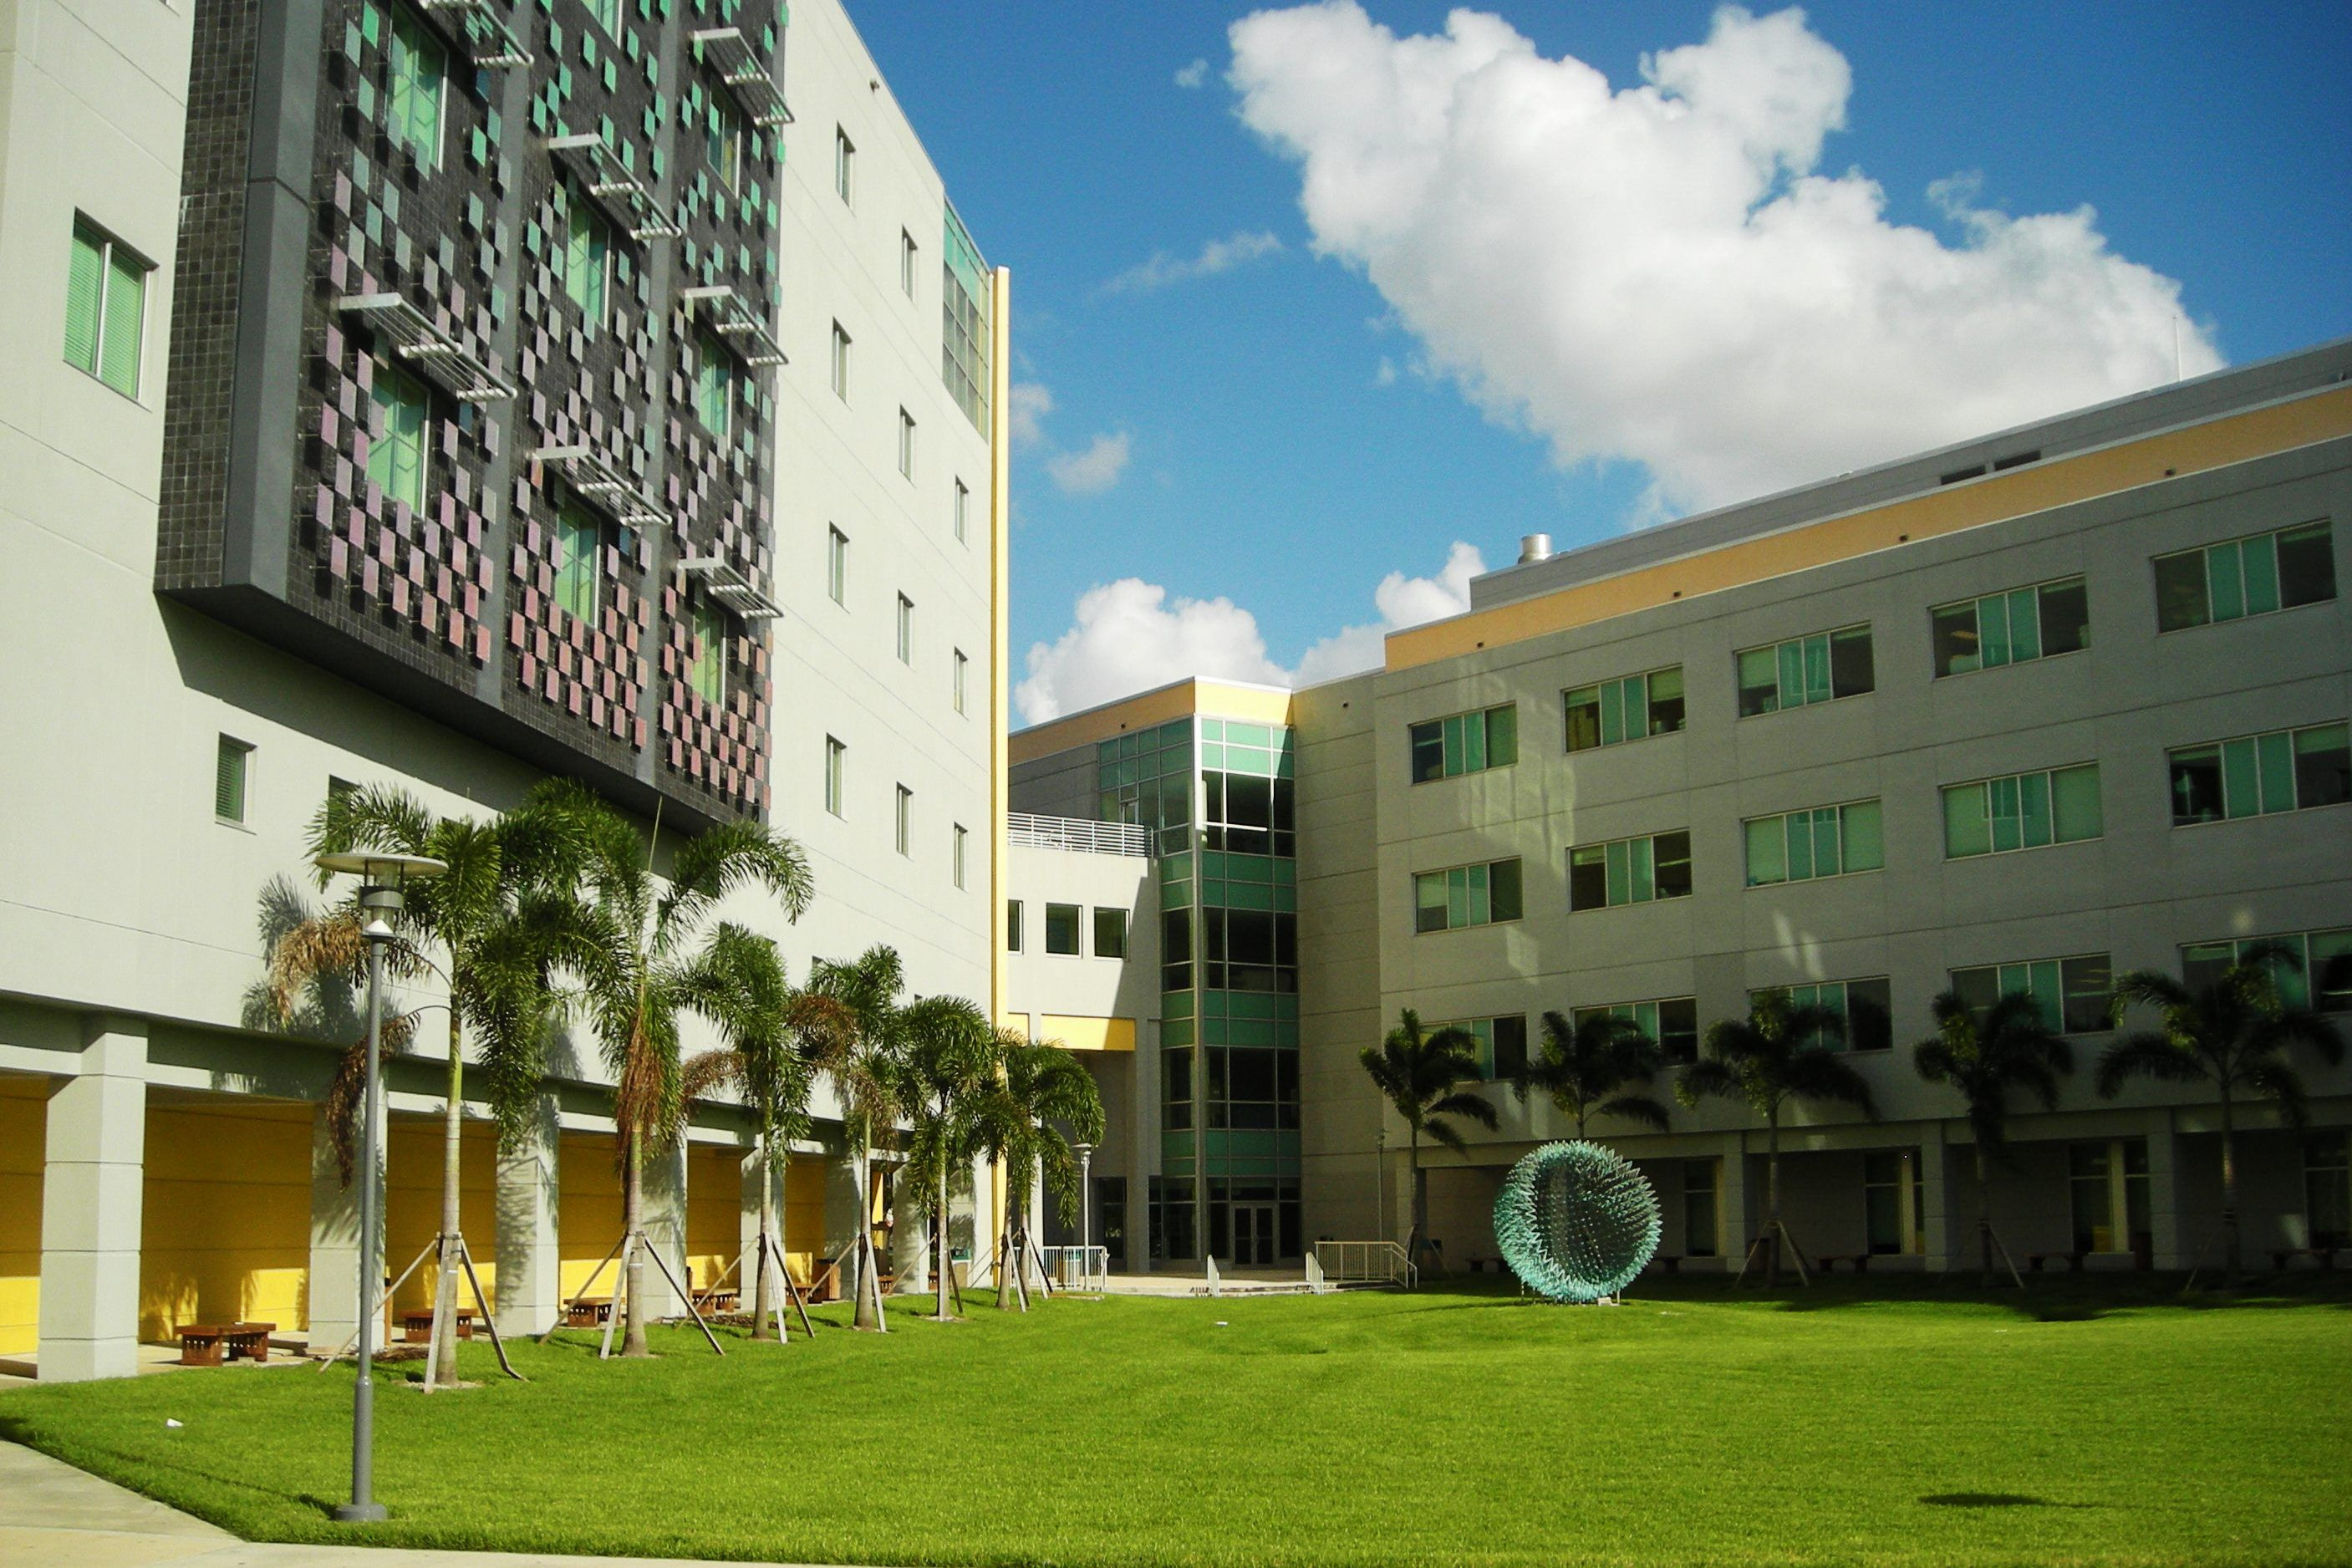 The Health and Life Sciences Buildings at the FIU College of Medicine